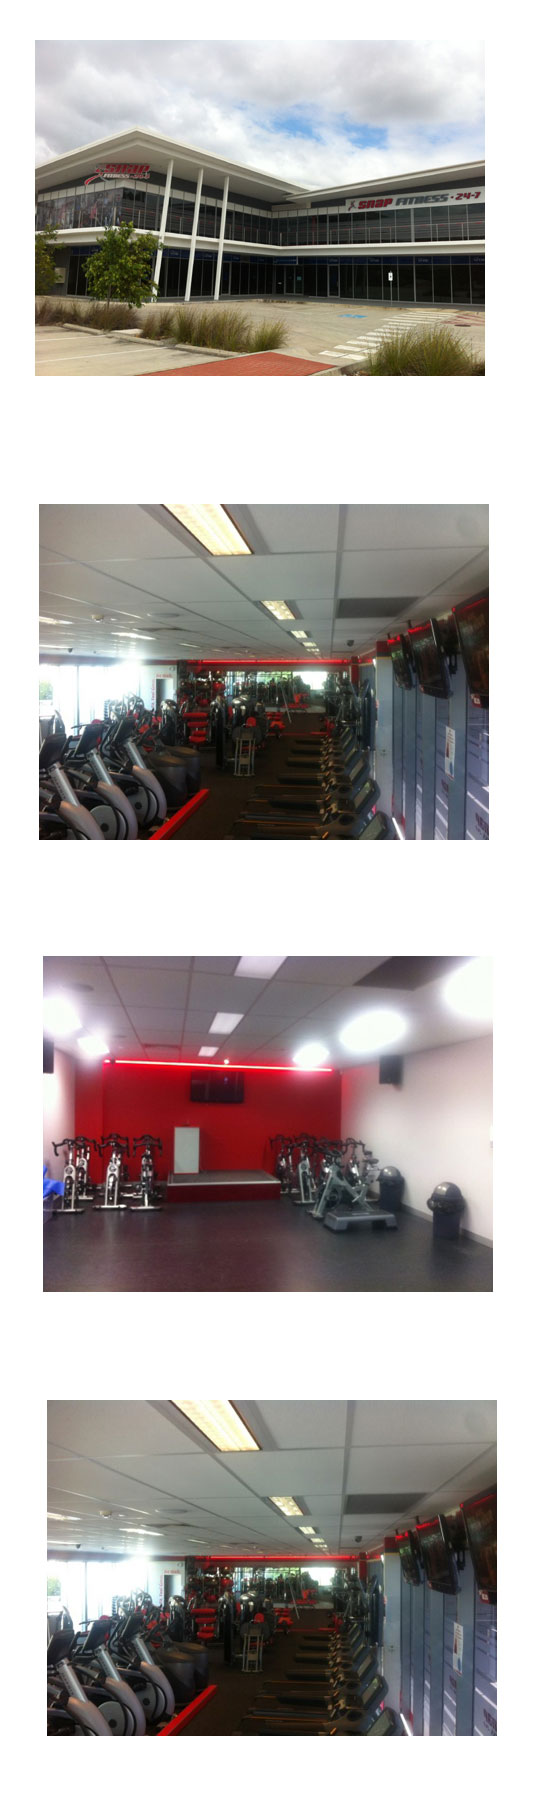 Snap Fitness - Cleveland Cleveland